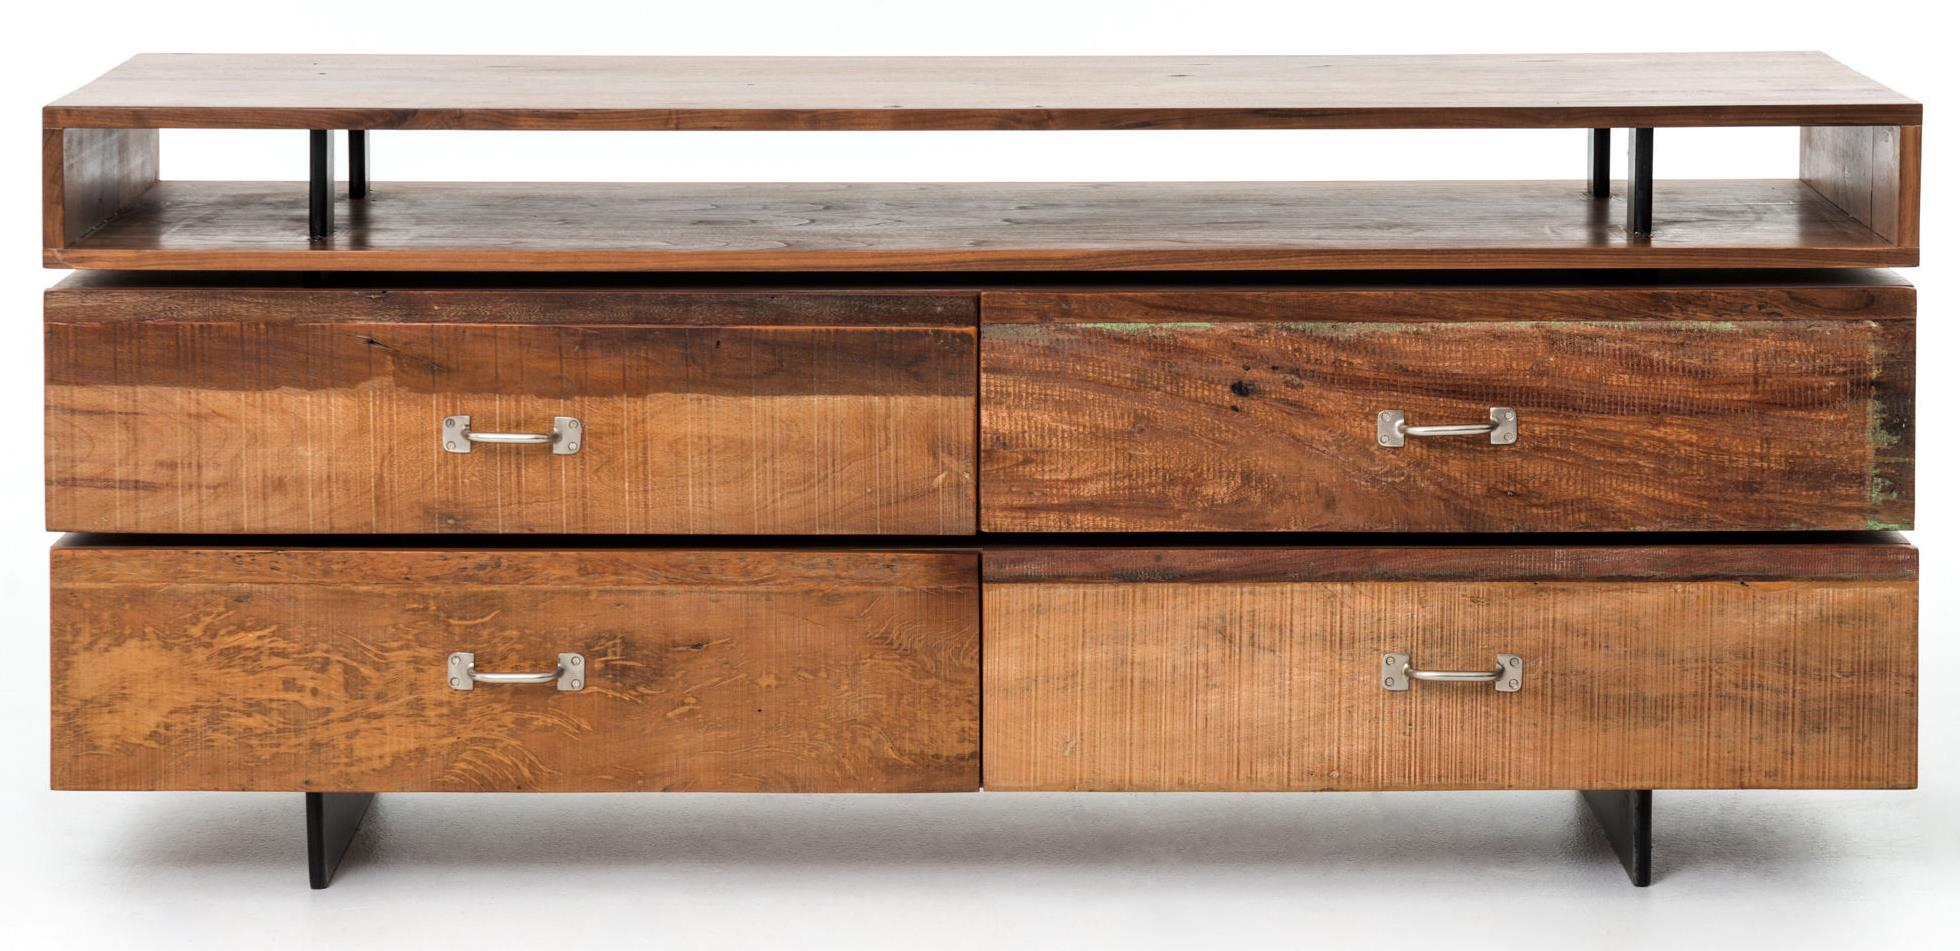 Four Hands Bina Sydney Dresser  - Item Number: VBNA-DR703